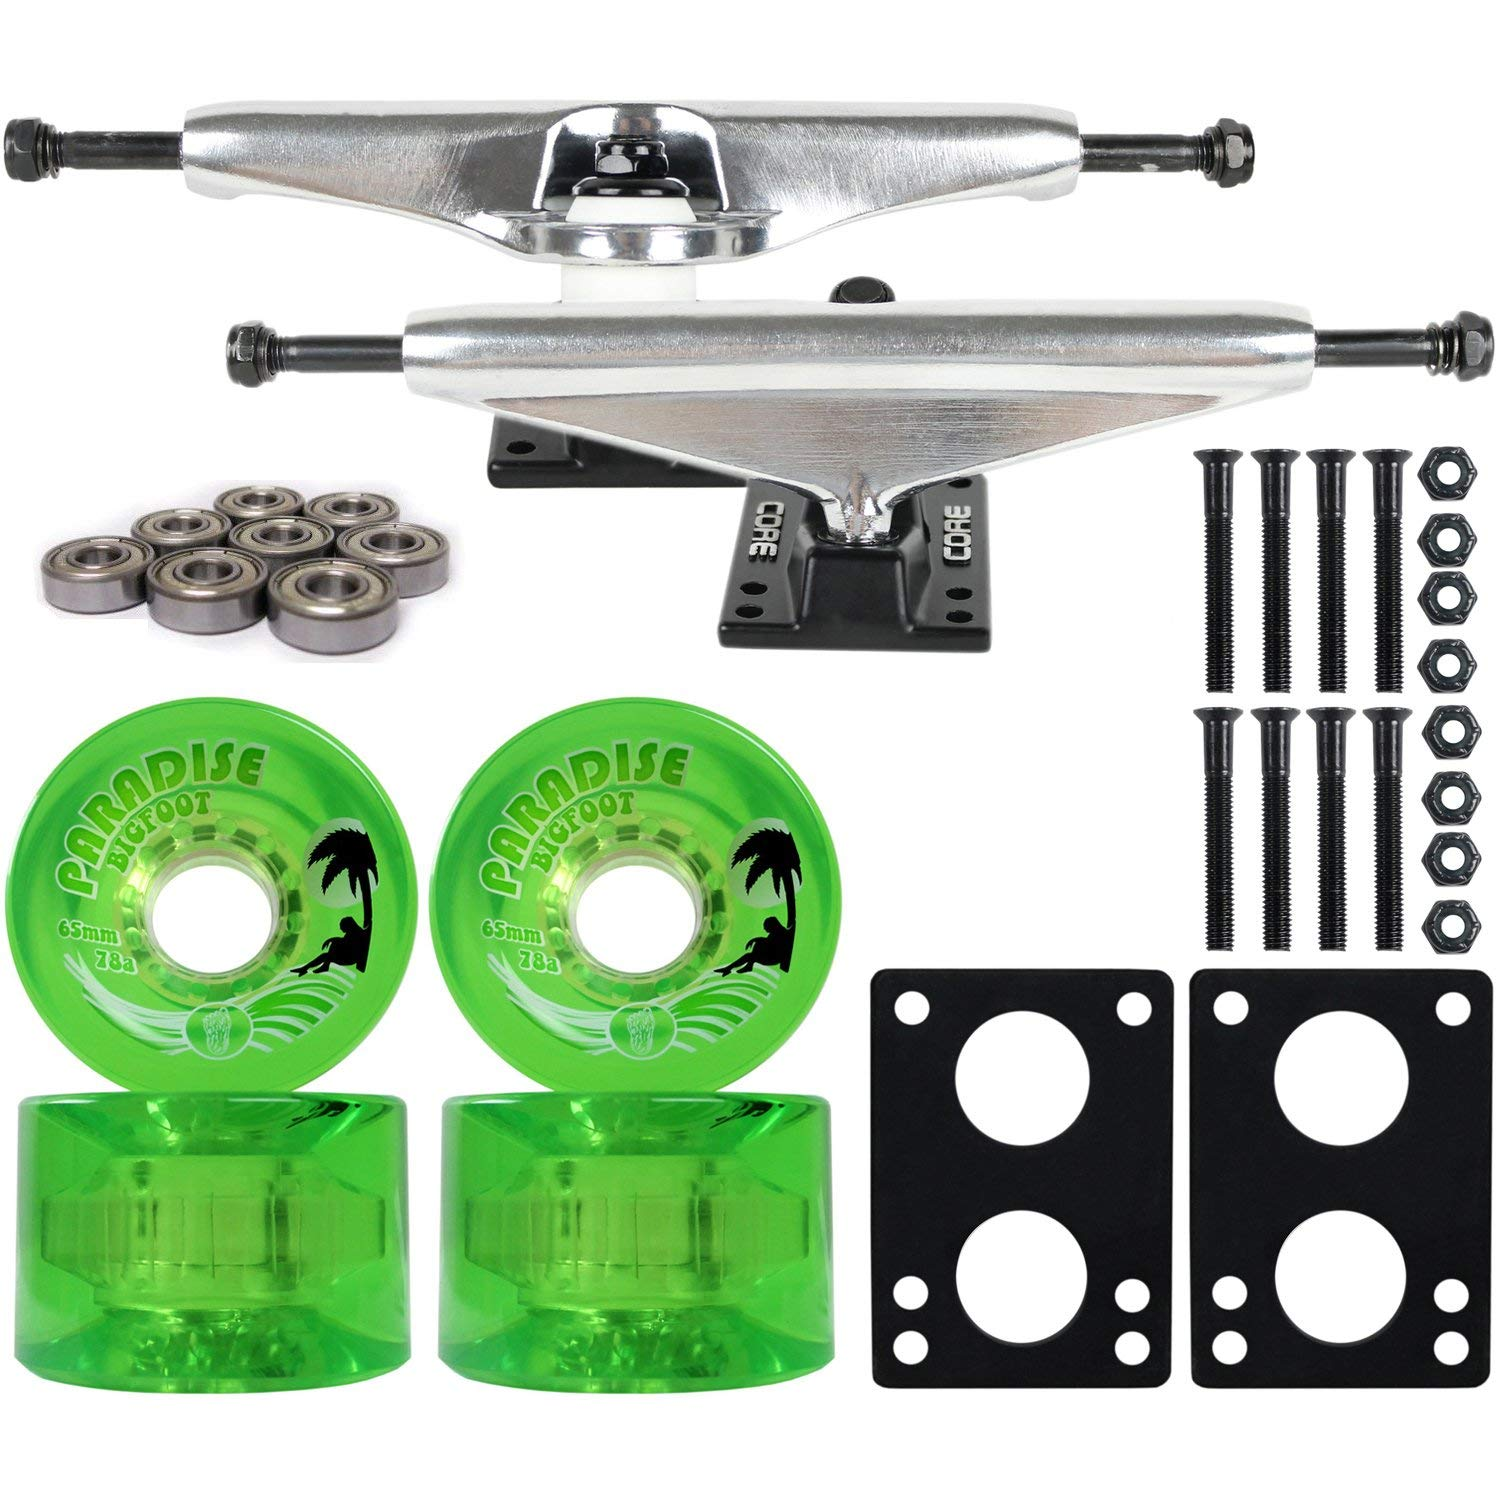 "Longboard Skateboard Trucks Combo Set 65mm Bigfoot Islanders Wheels with Silver Trucks, Bearings, and Hardware Package (65mm Green Wheels, 6.0 (8.63"") Silver Trucks)"